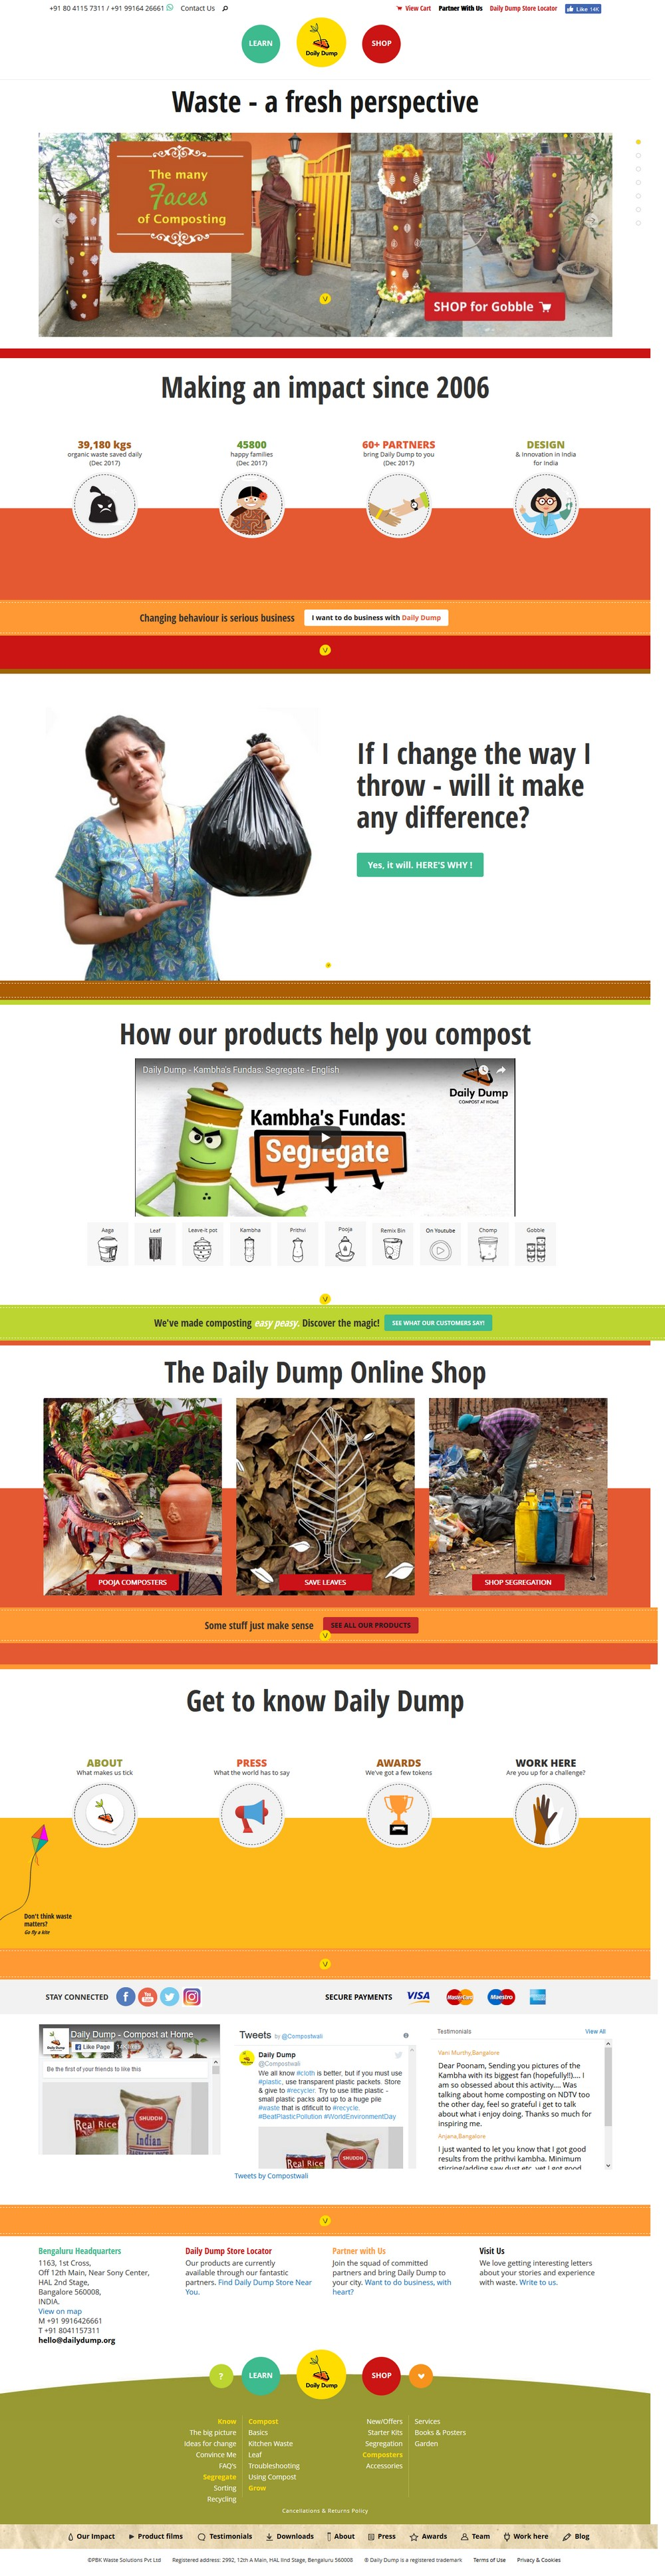 Daily Dump - Successfully Delivered Projects On-Time and On-Budget. Improved Website Conversation Rate By 80% Against Existing Control.